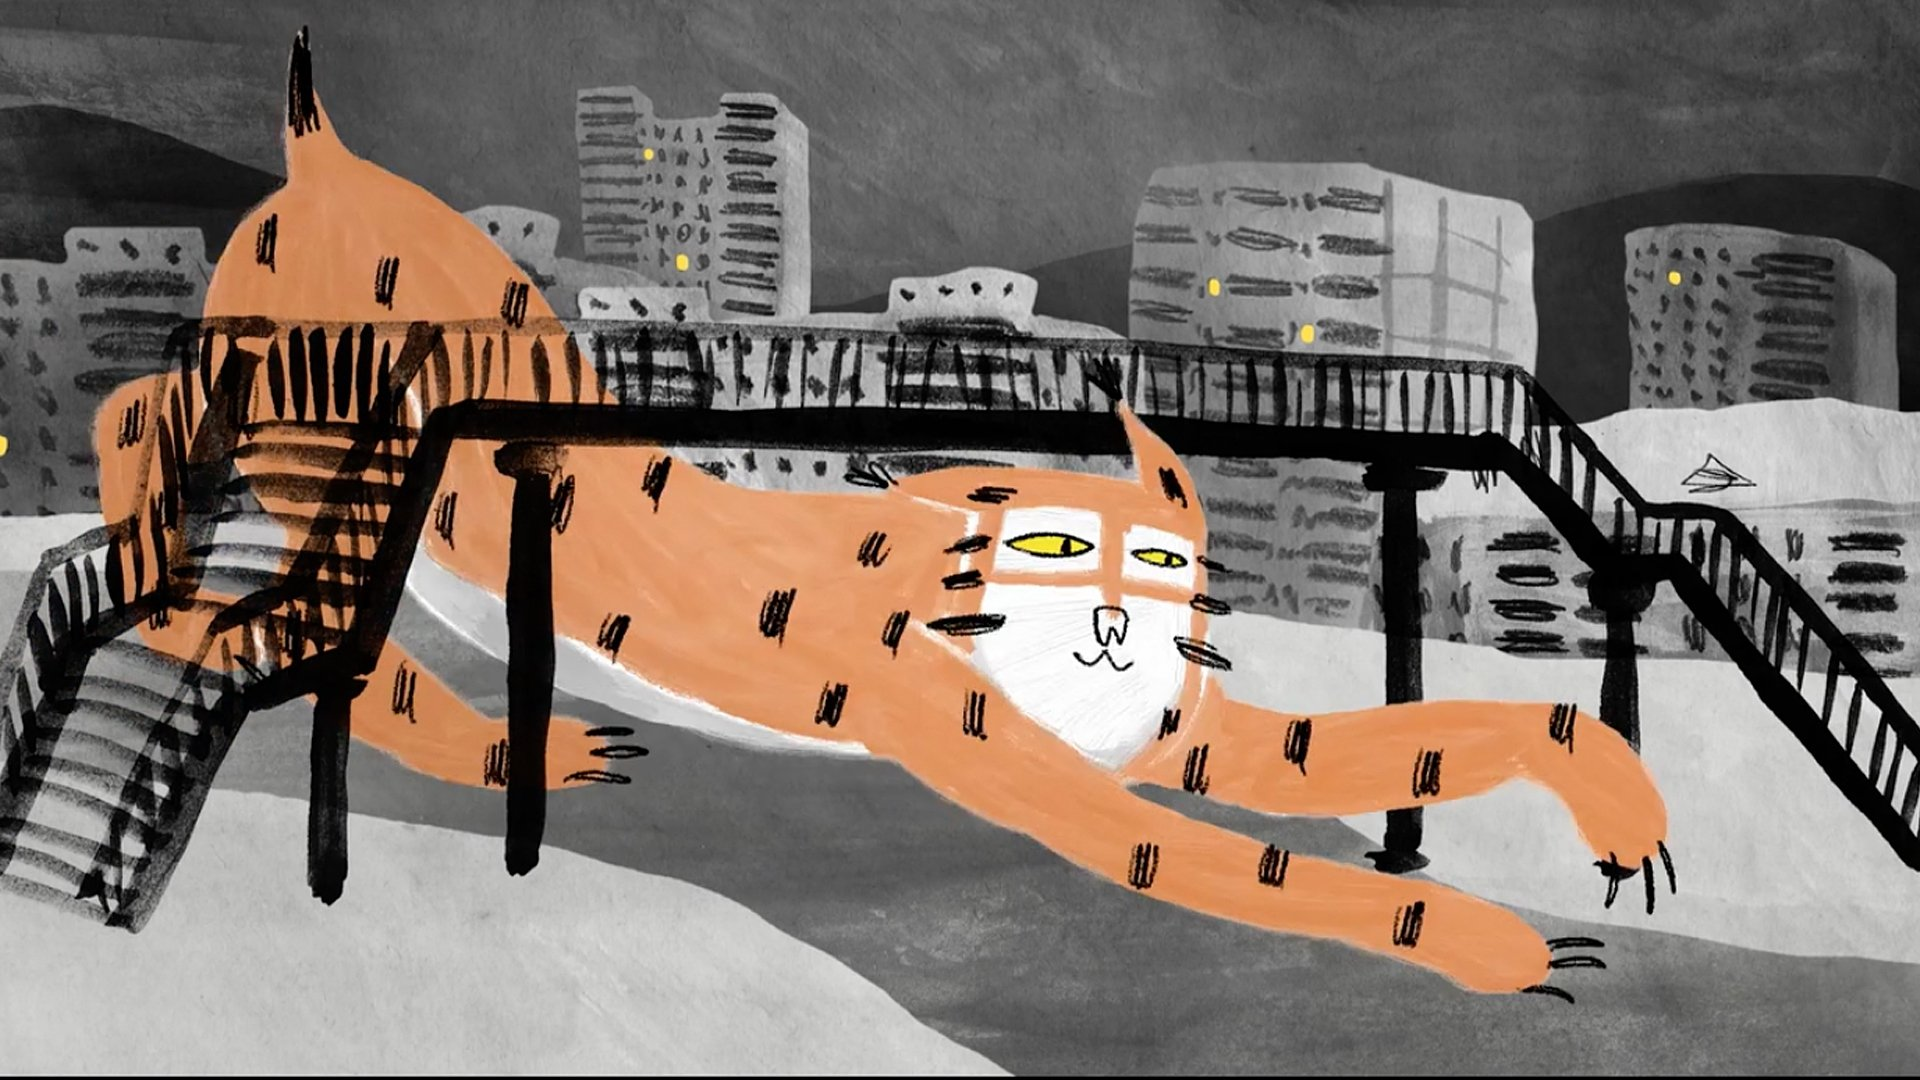 """Nina Bisiarina's 'A Lynx in the Town' is screened at the """"Old Normal: Virtual Self"""" selection of the festival."""